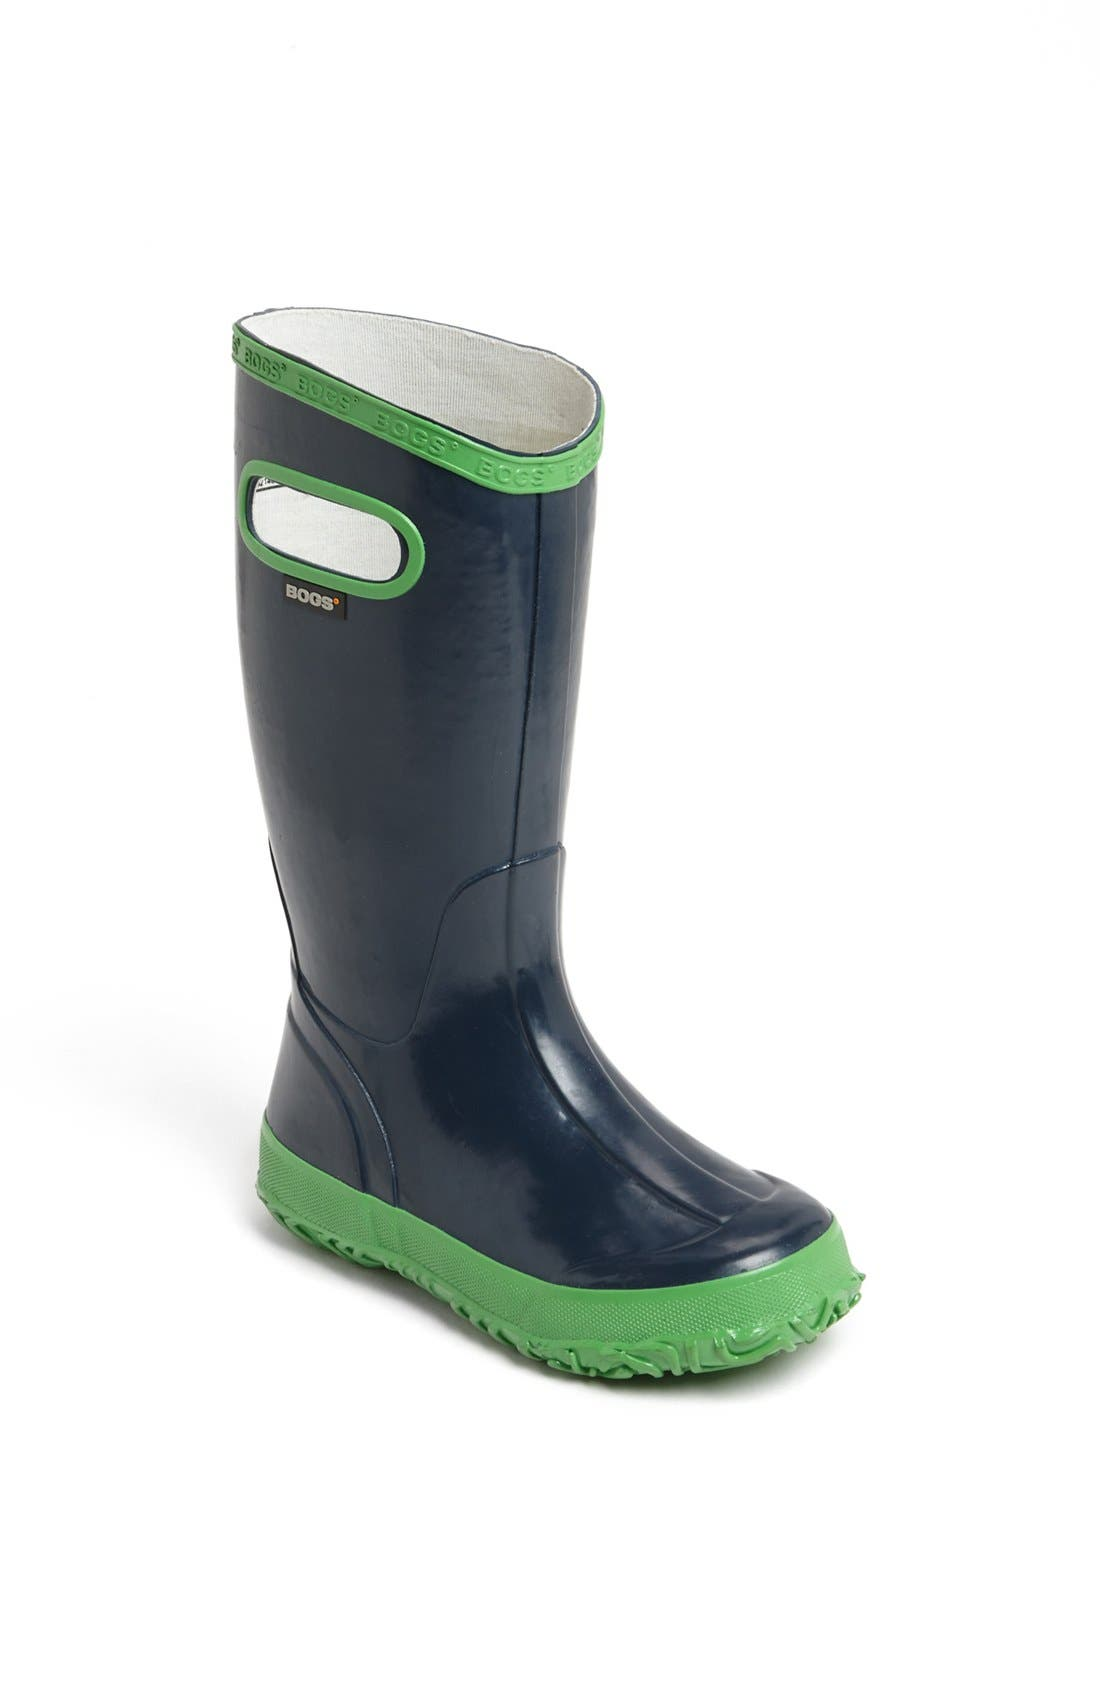 Bogs Rubber Rain Boot